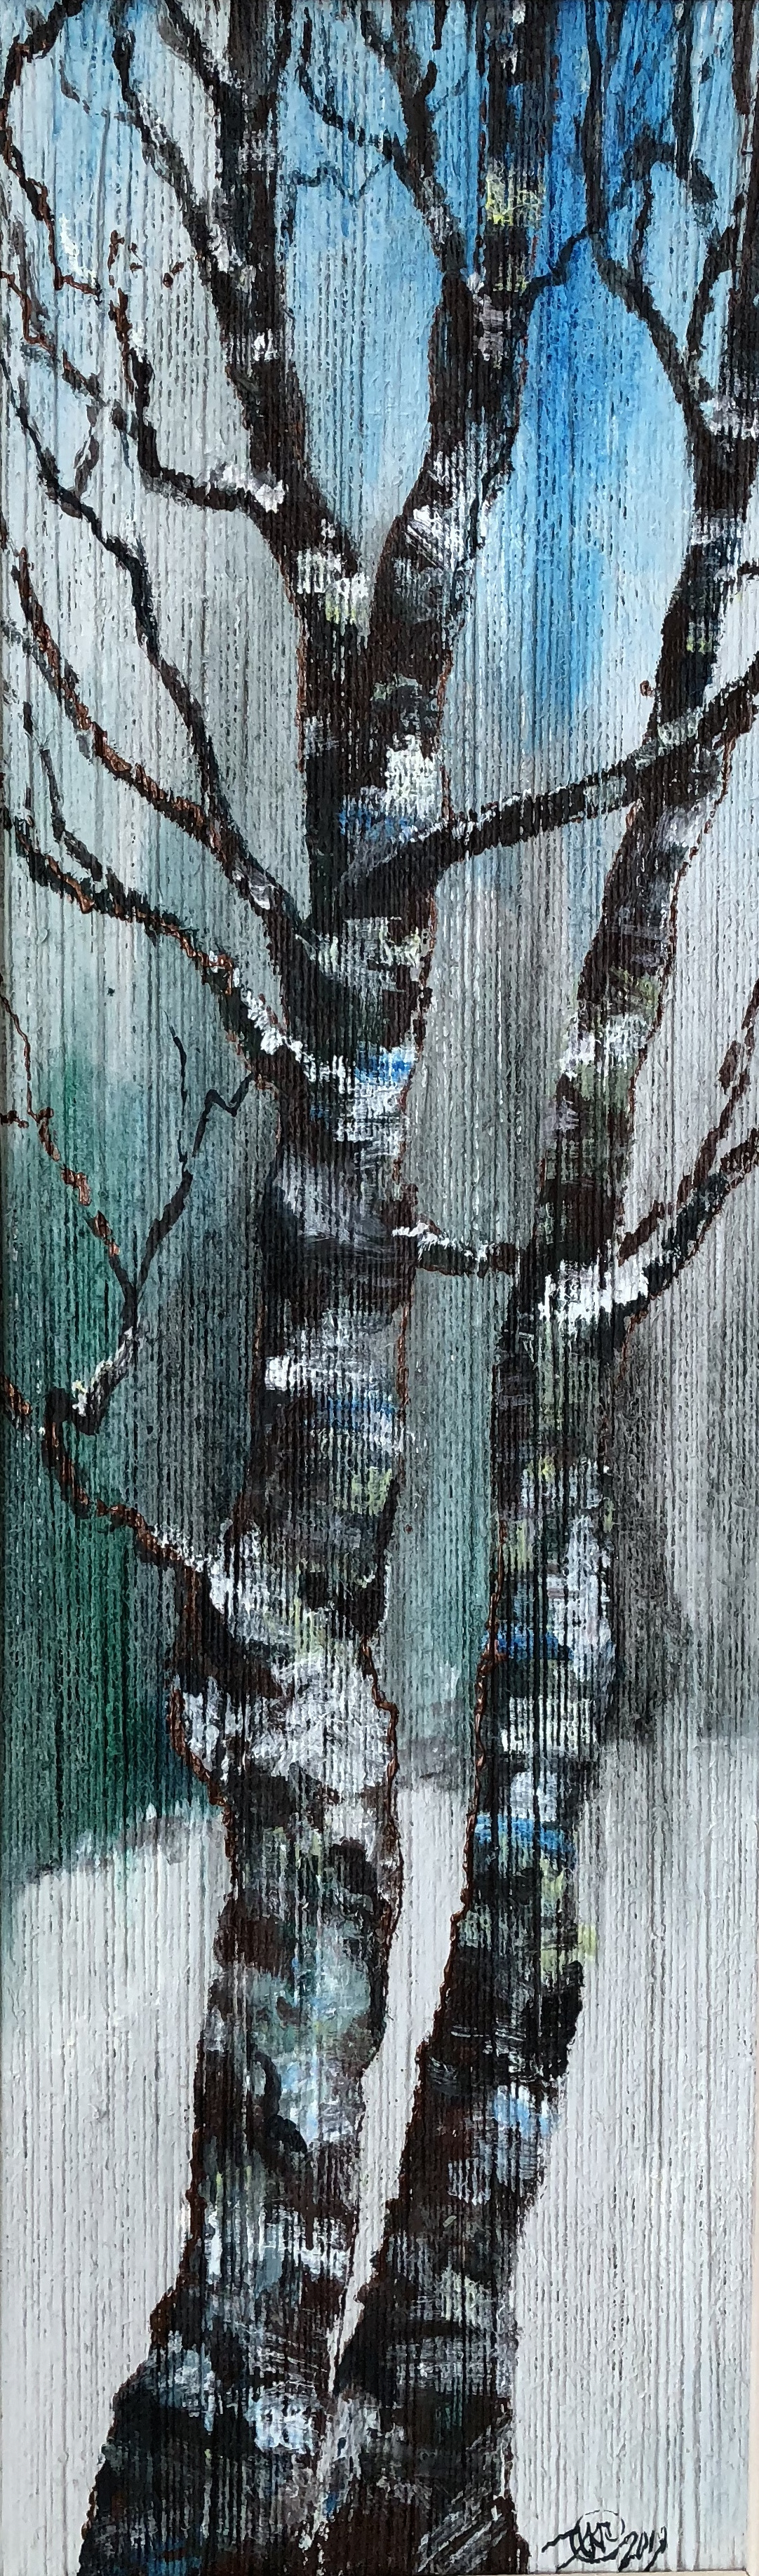 Unknown artist. Winter birch